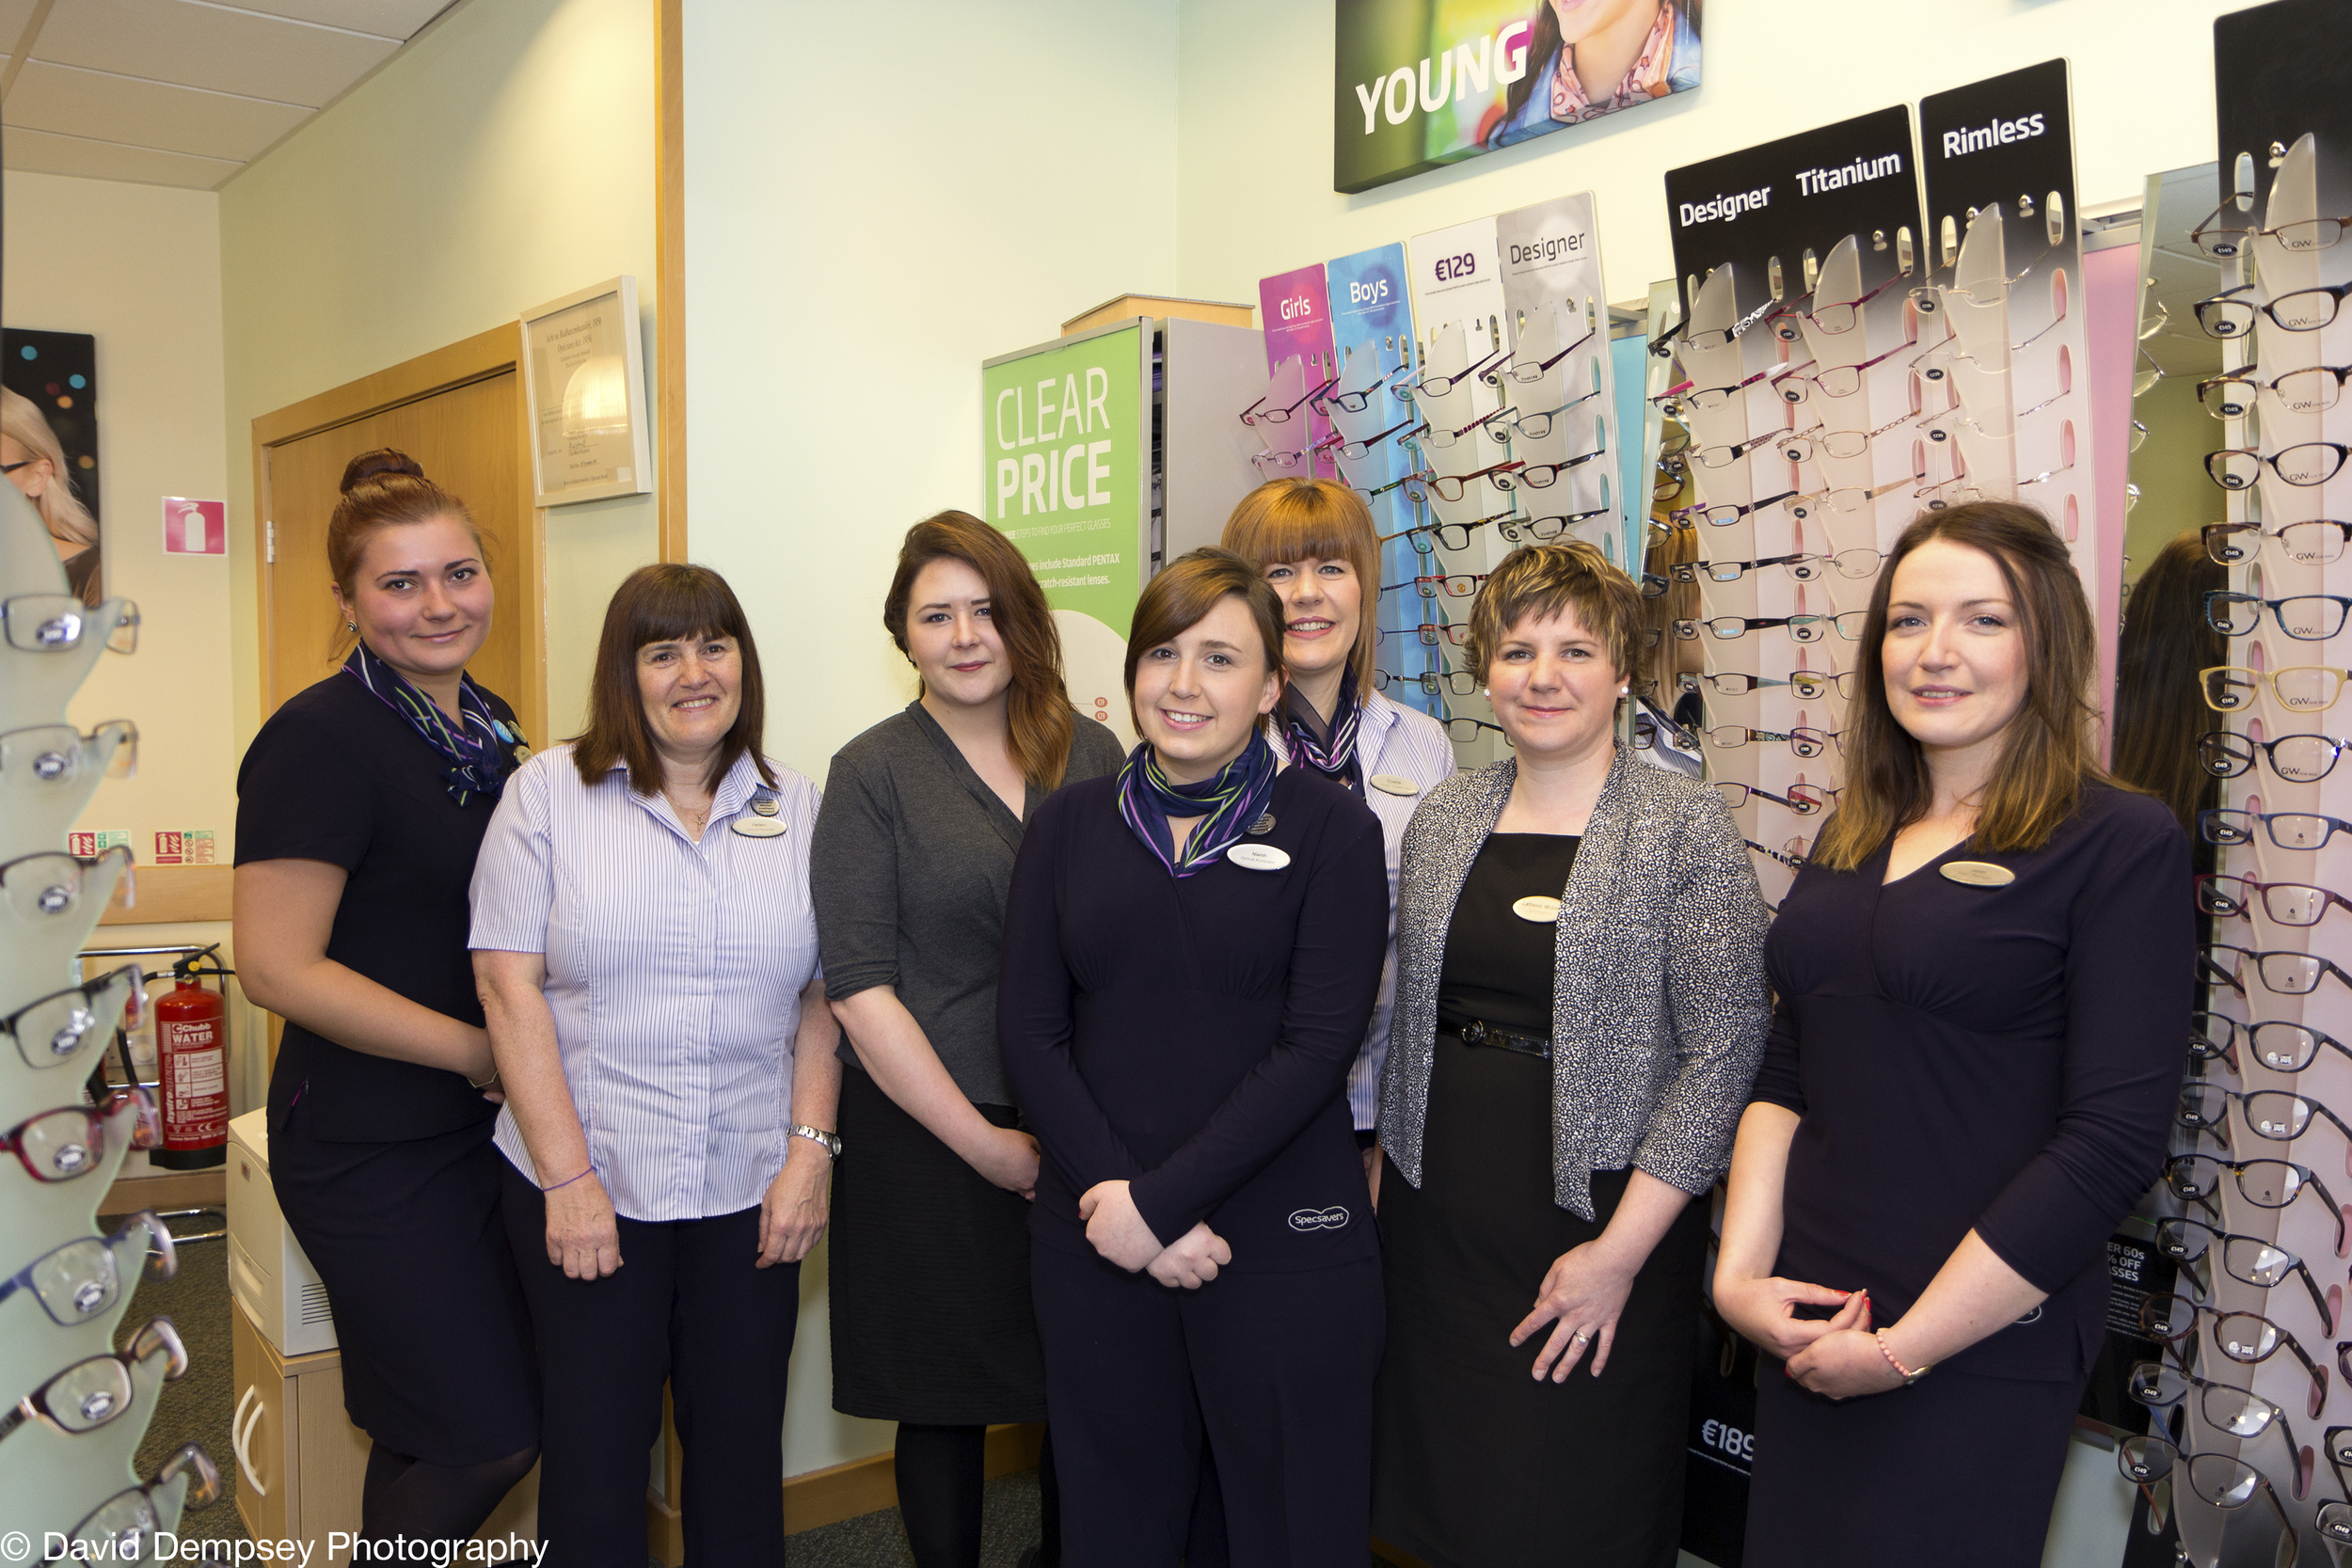 Staff at Specsavers